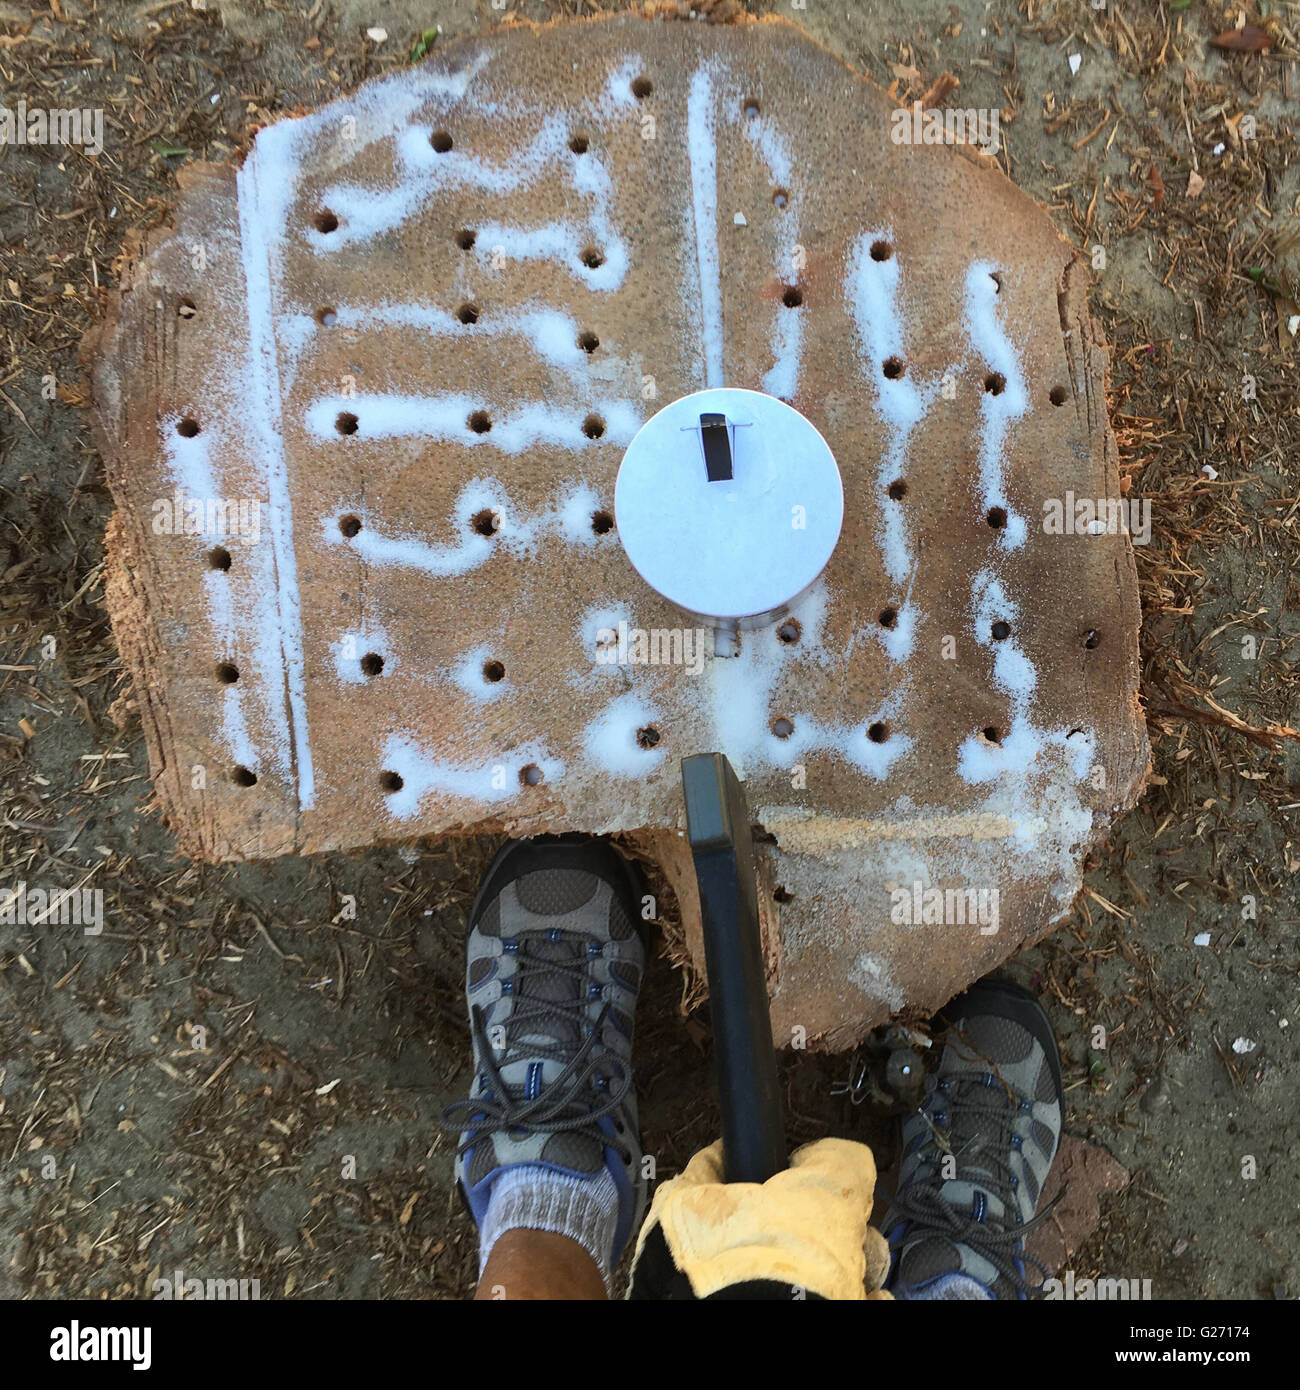 female-drills-holes-into-a-palm-tree-stu